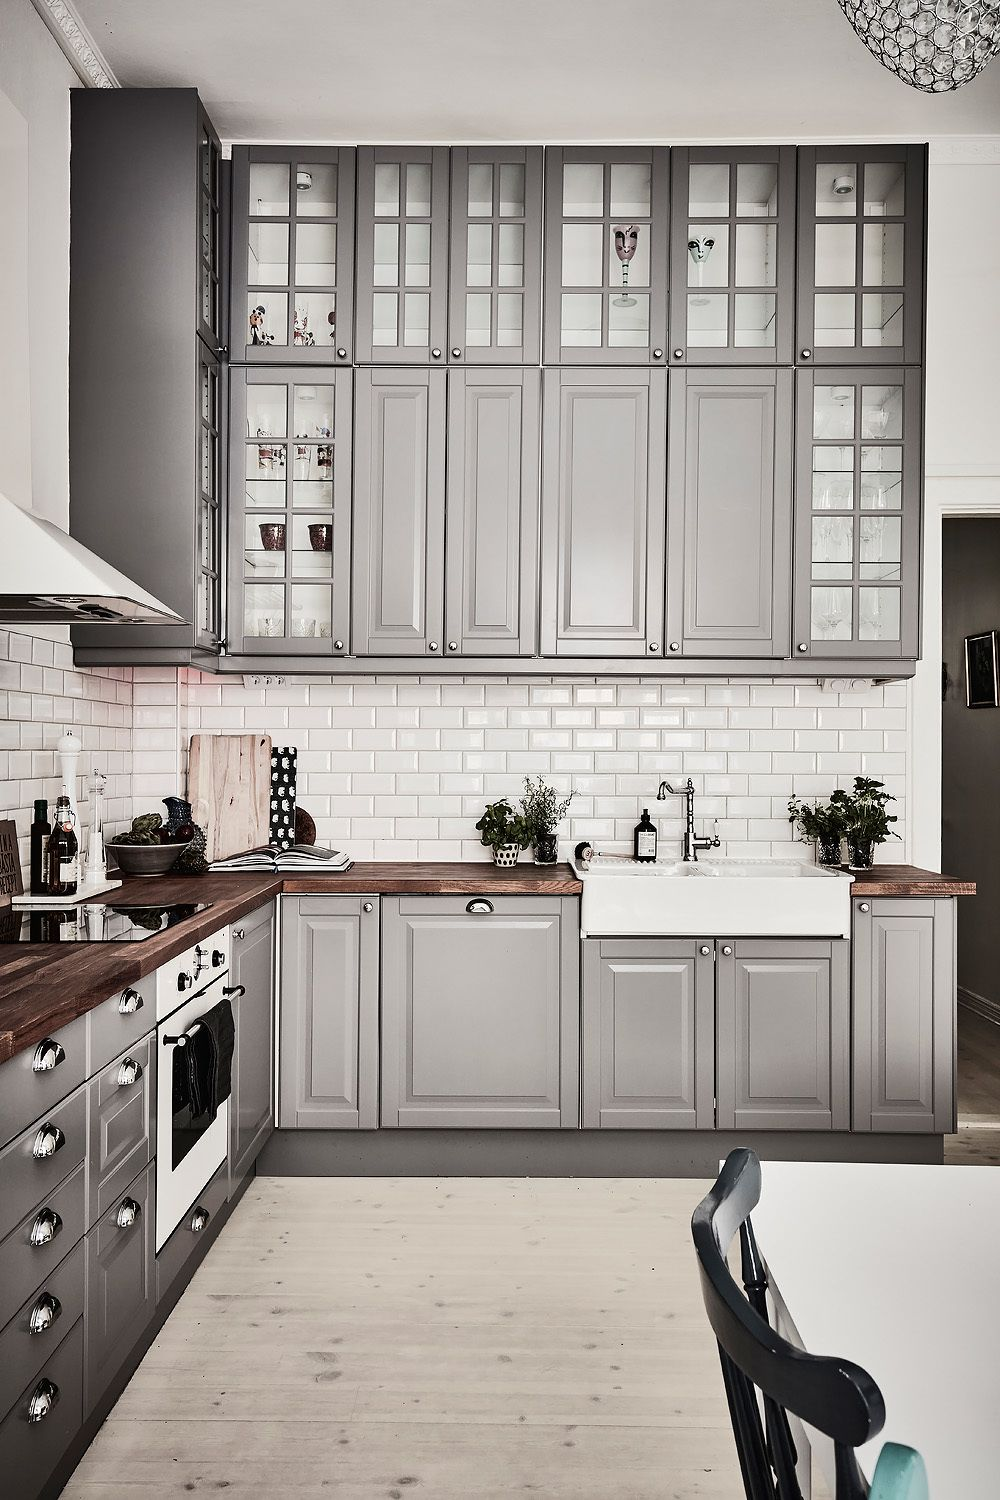 Best Kitchen Gallery: Inspiring Kitchens You Won't Believe Are Ikea Gray Cabi S of Light Gray Kitchen Cabinets on rachelxblog.com